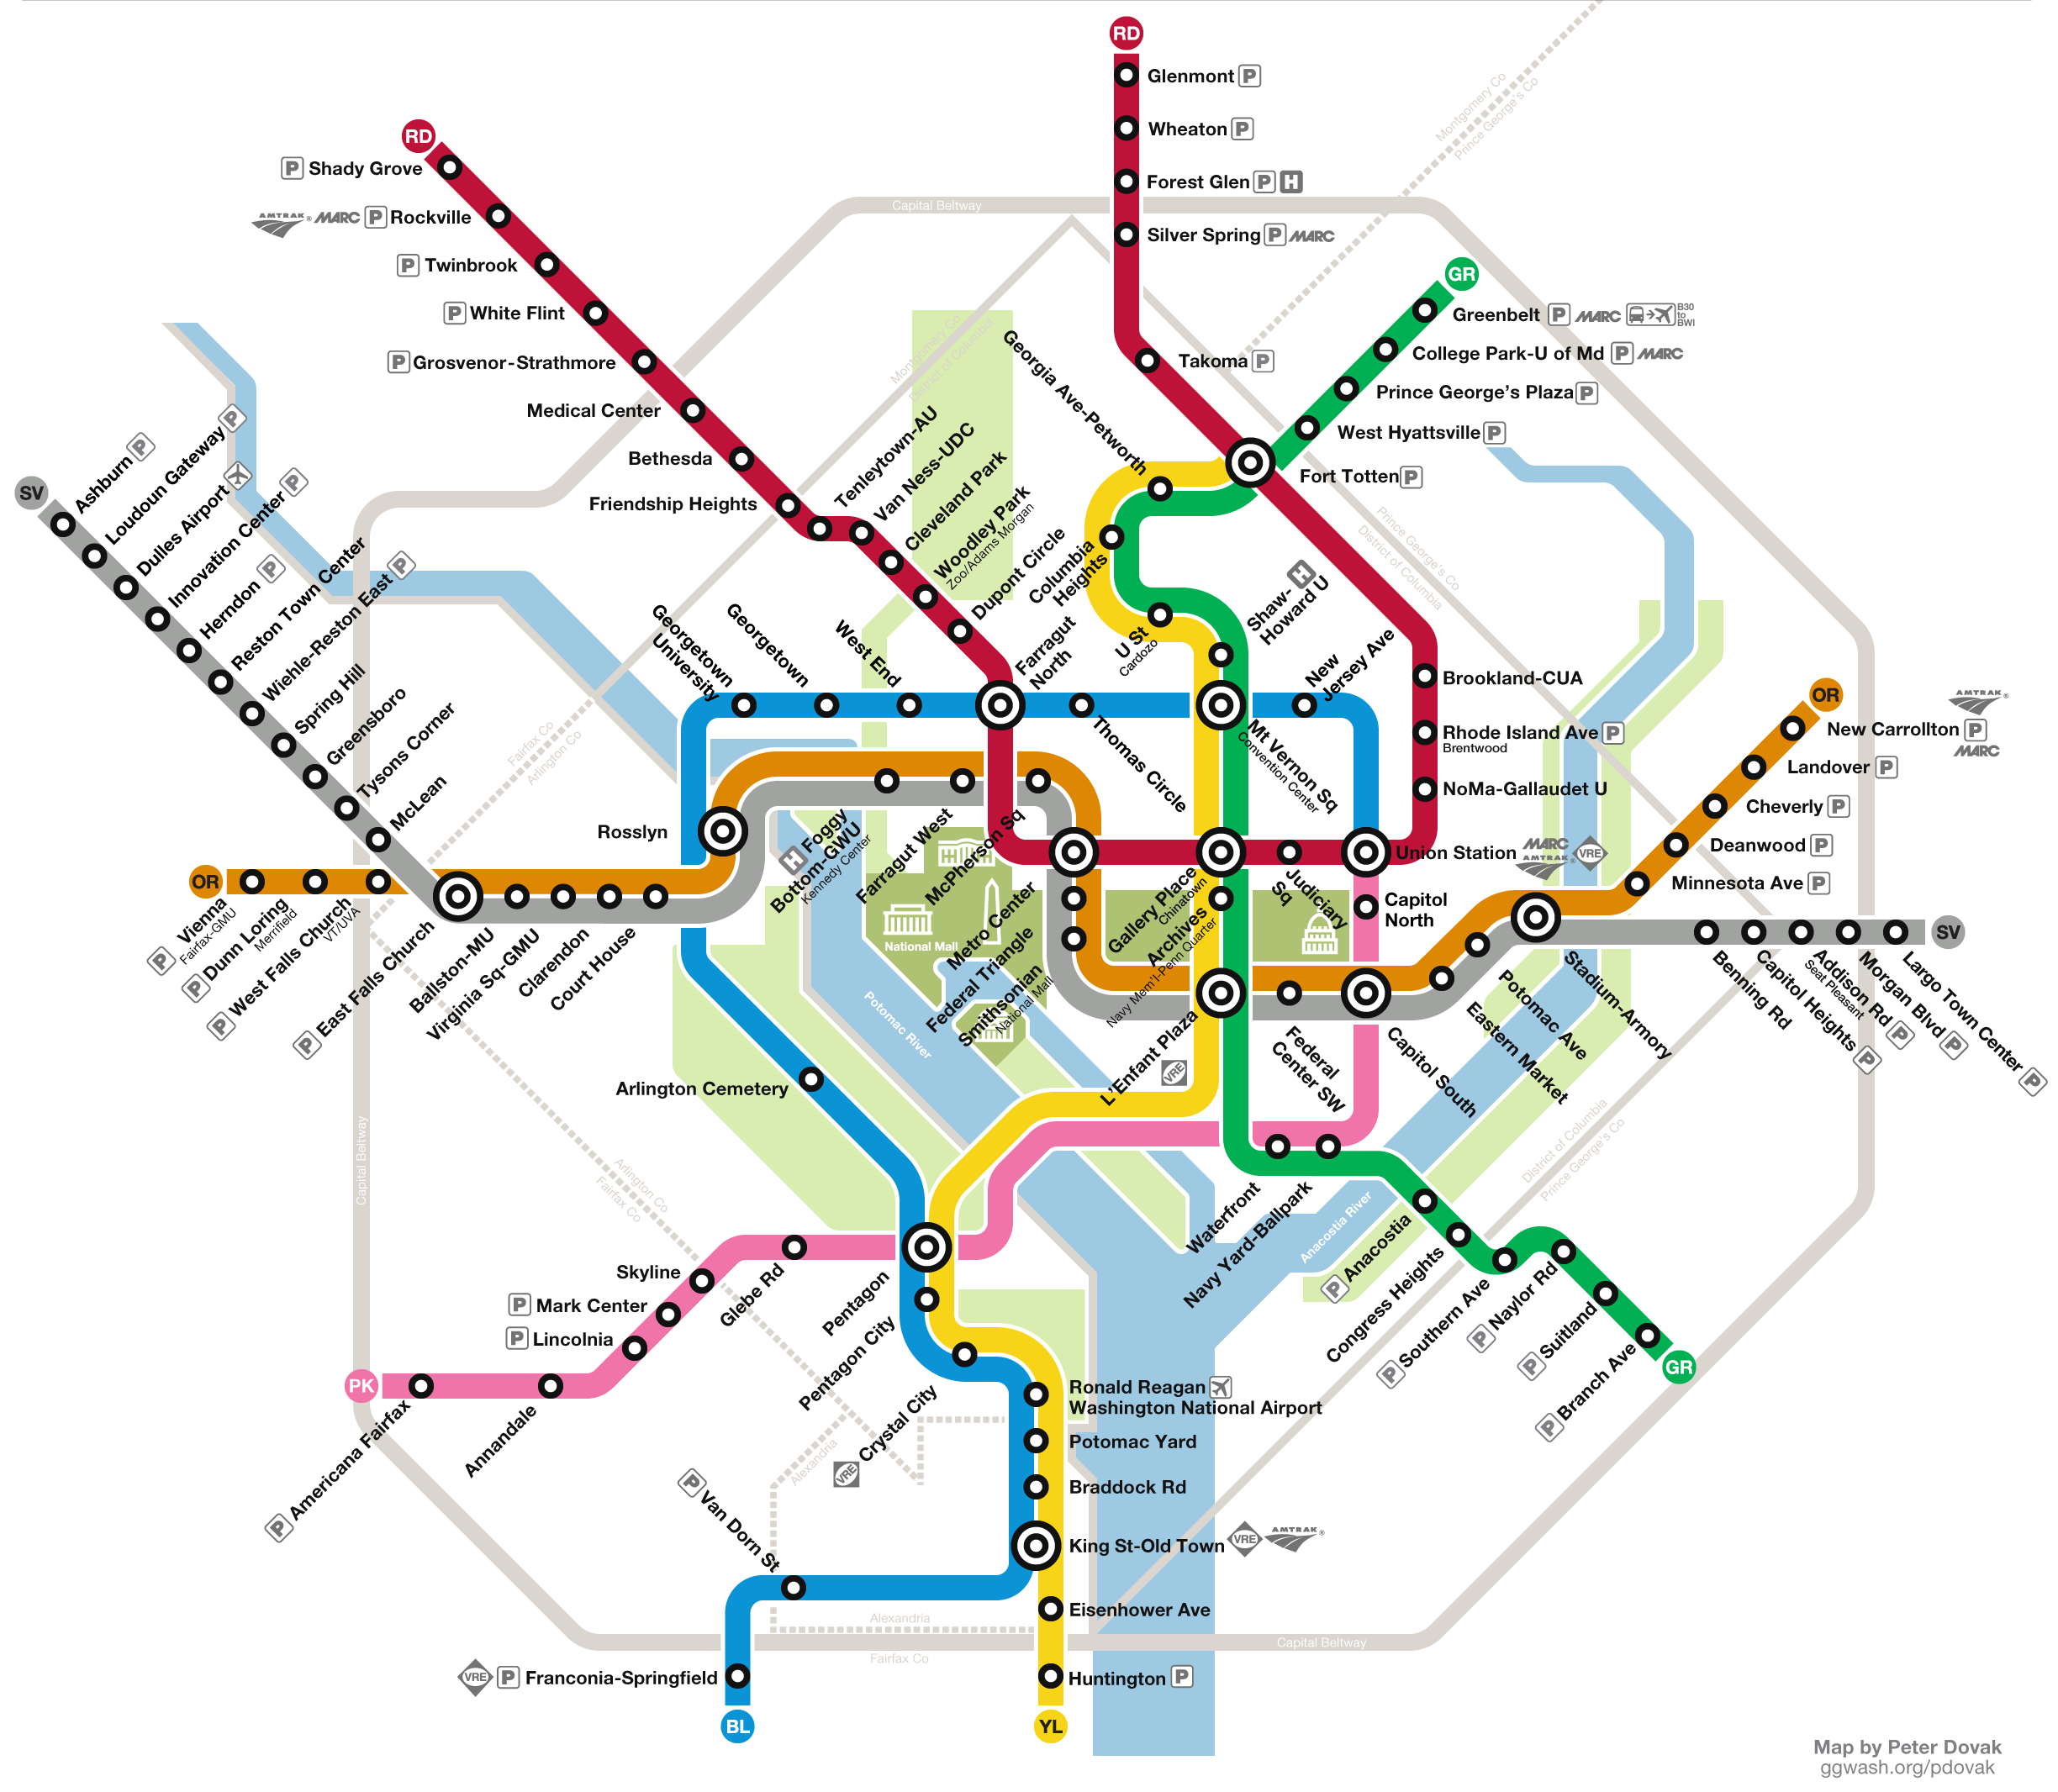 Wmata Rail Map Conceptual WMATA map by Peter Dovak. Expanded DC Metro System with